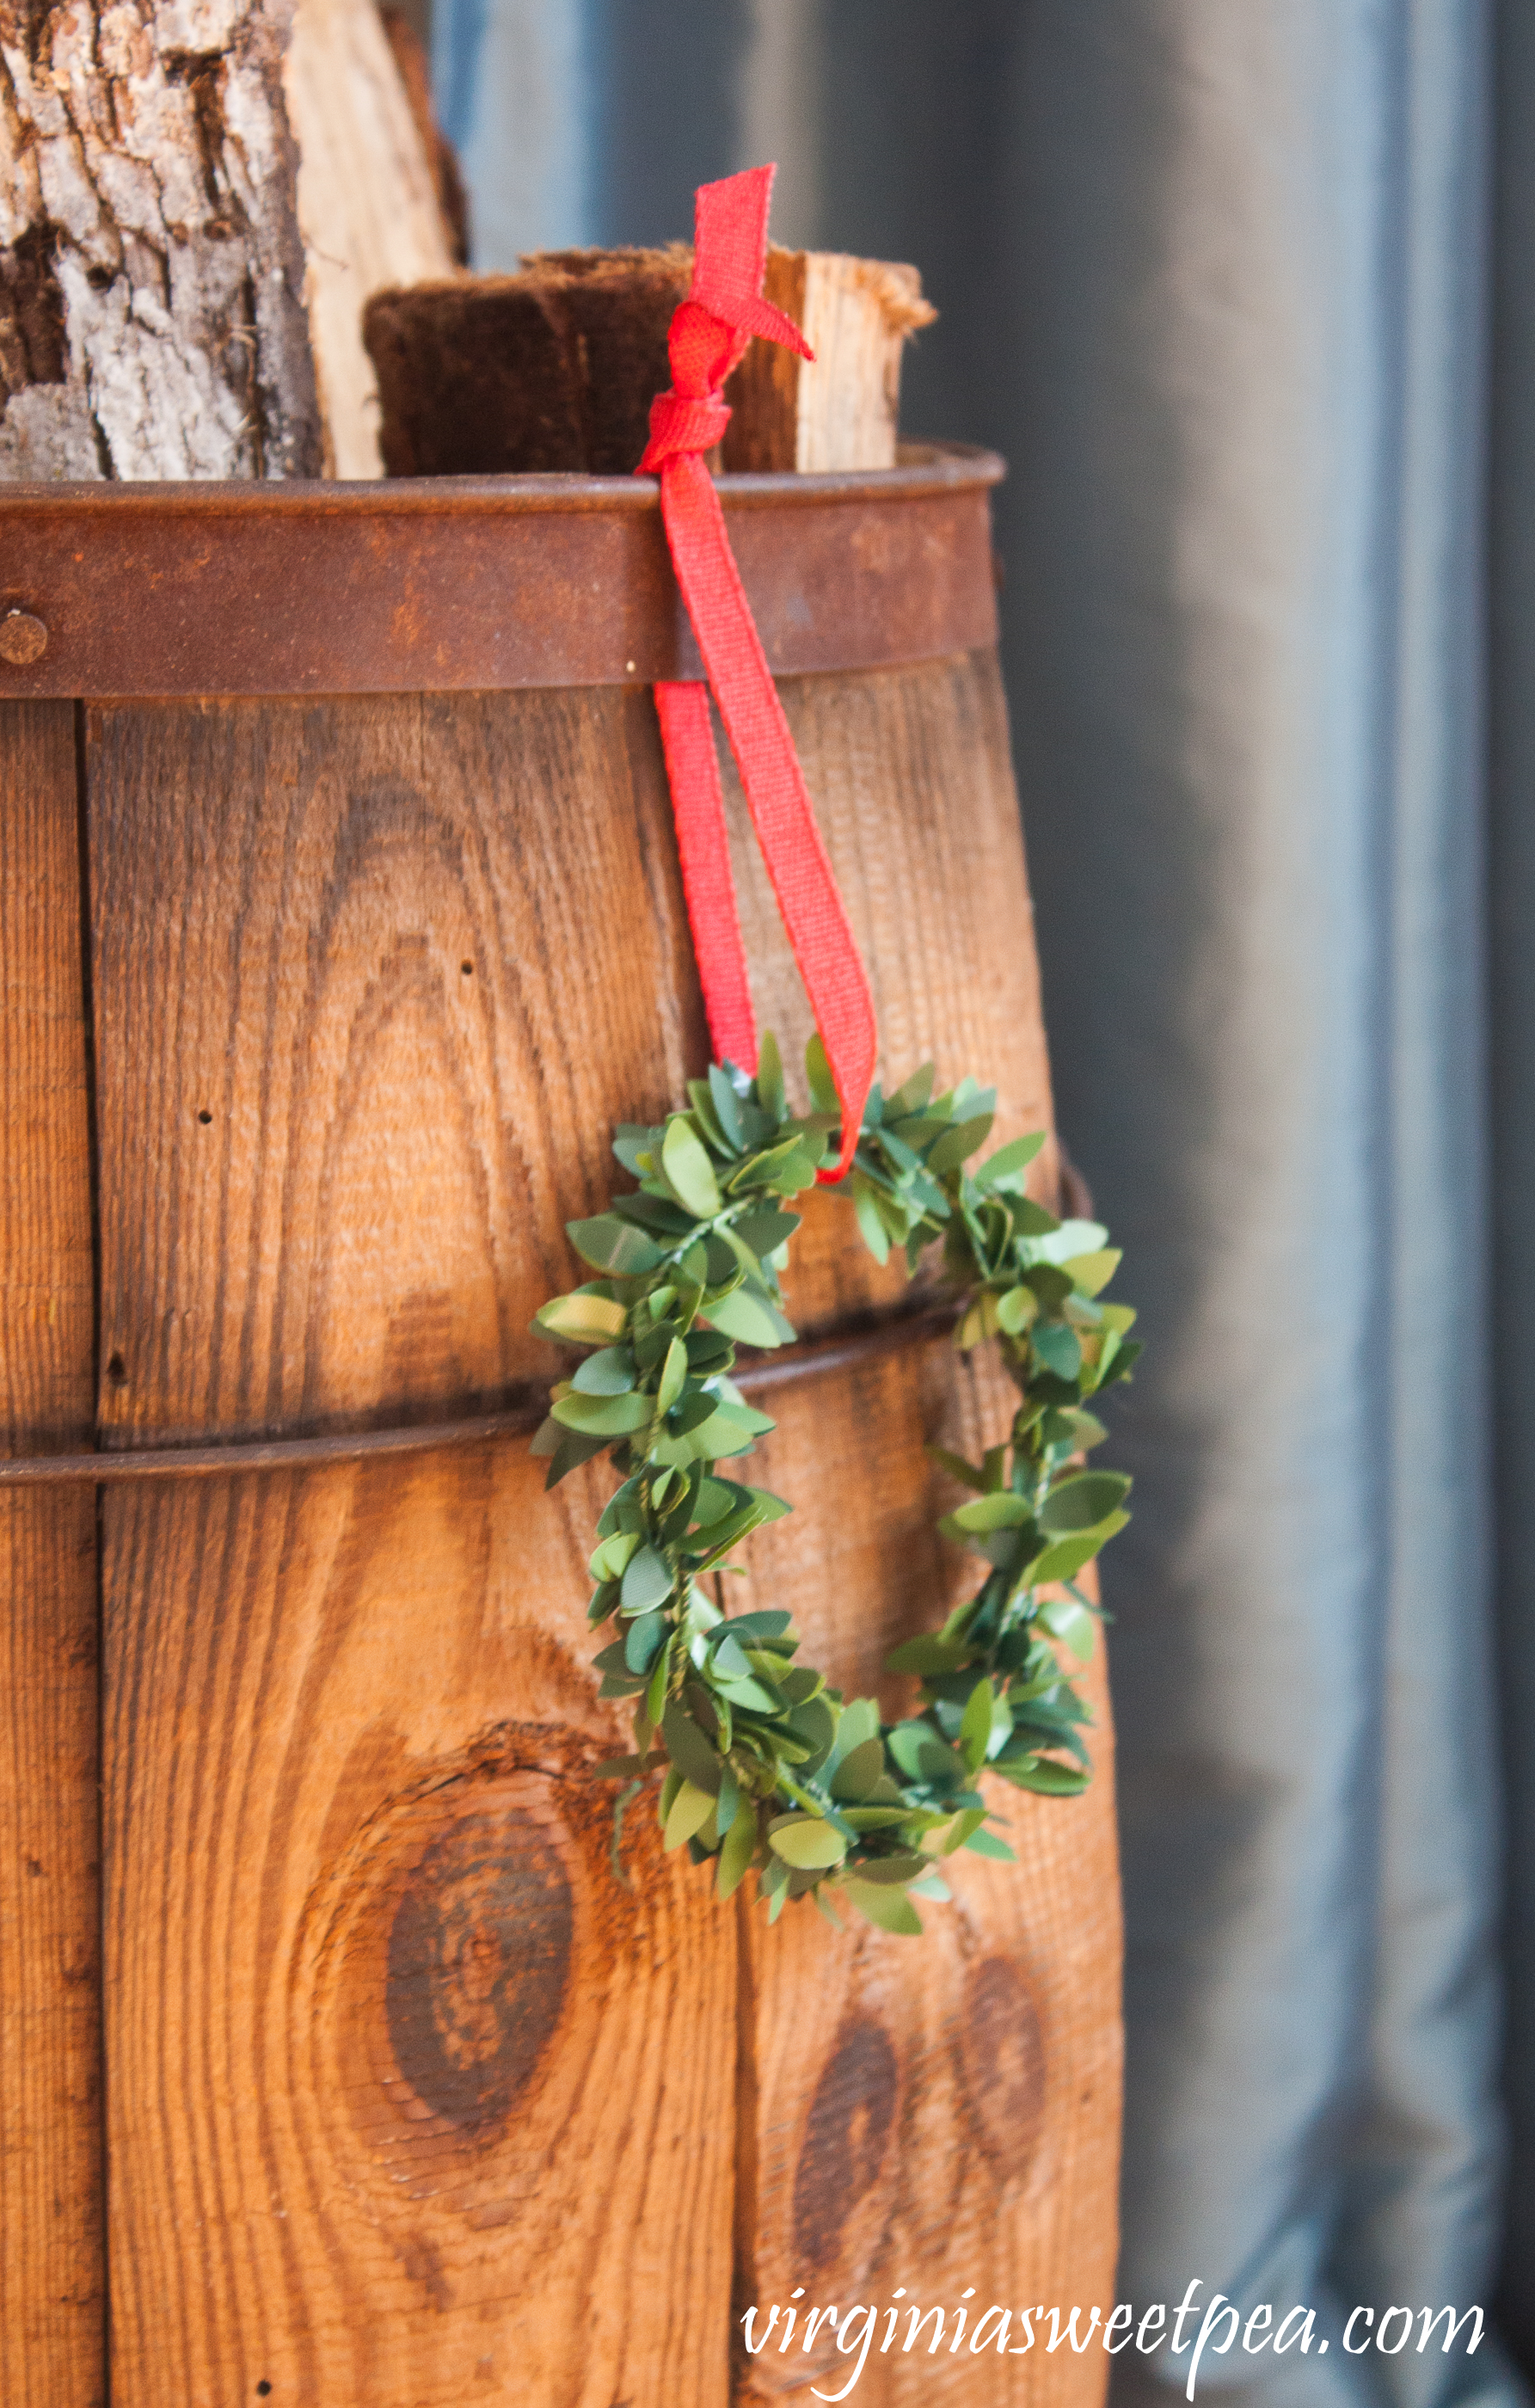 A vintage wooden barrel filled with logs is embellished with a boxwood wreath for Christmas. #christmas #christmashomedecor #christmasideas #favoritechristmasideas #vintagechristmas